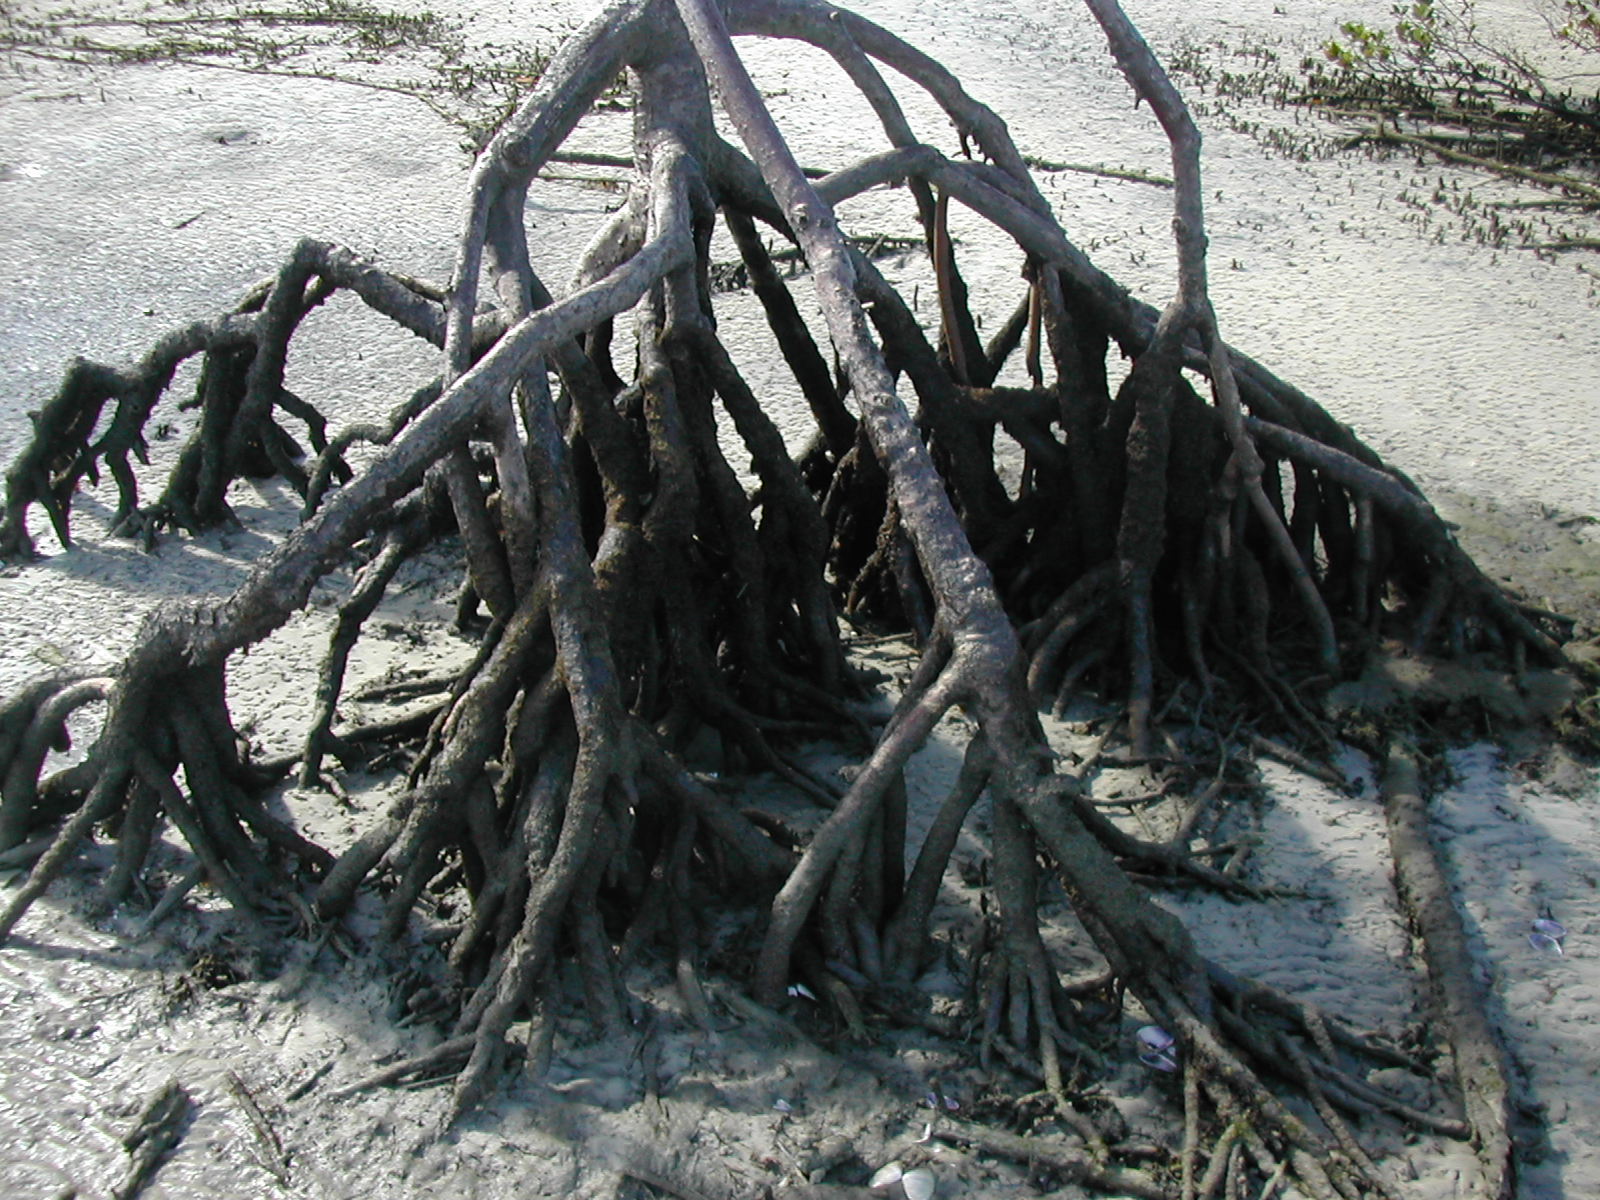 Rhizophora stylosa roots